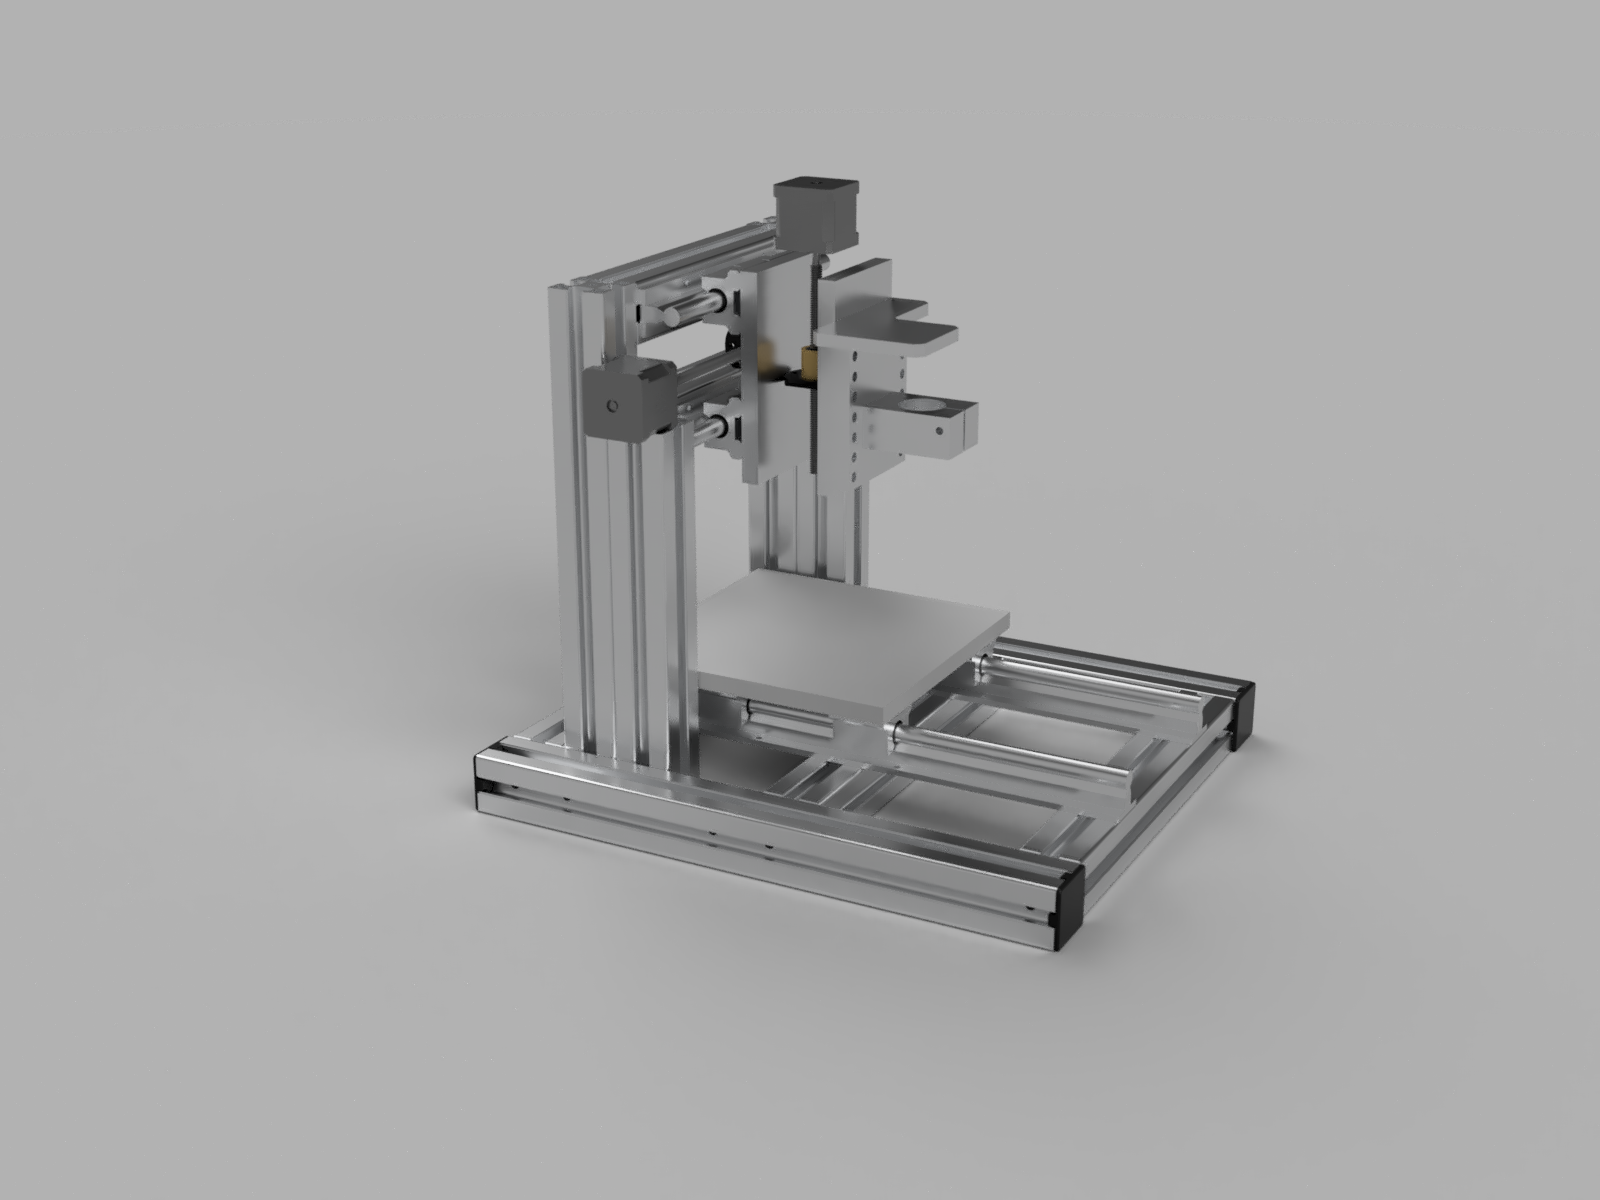 Render of the redesigned PCB Mill frame